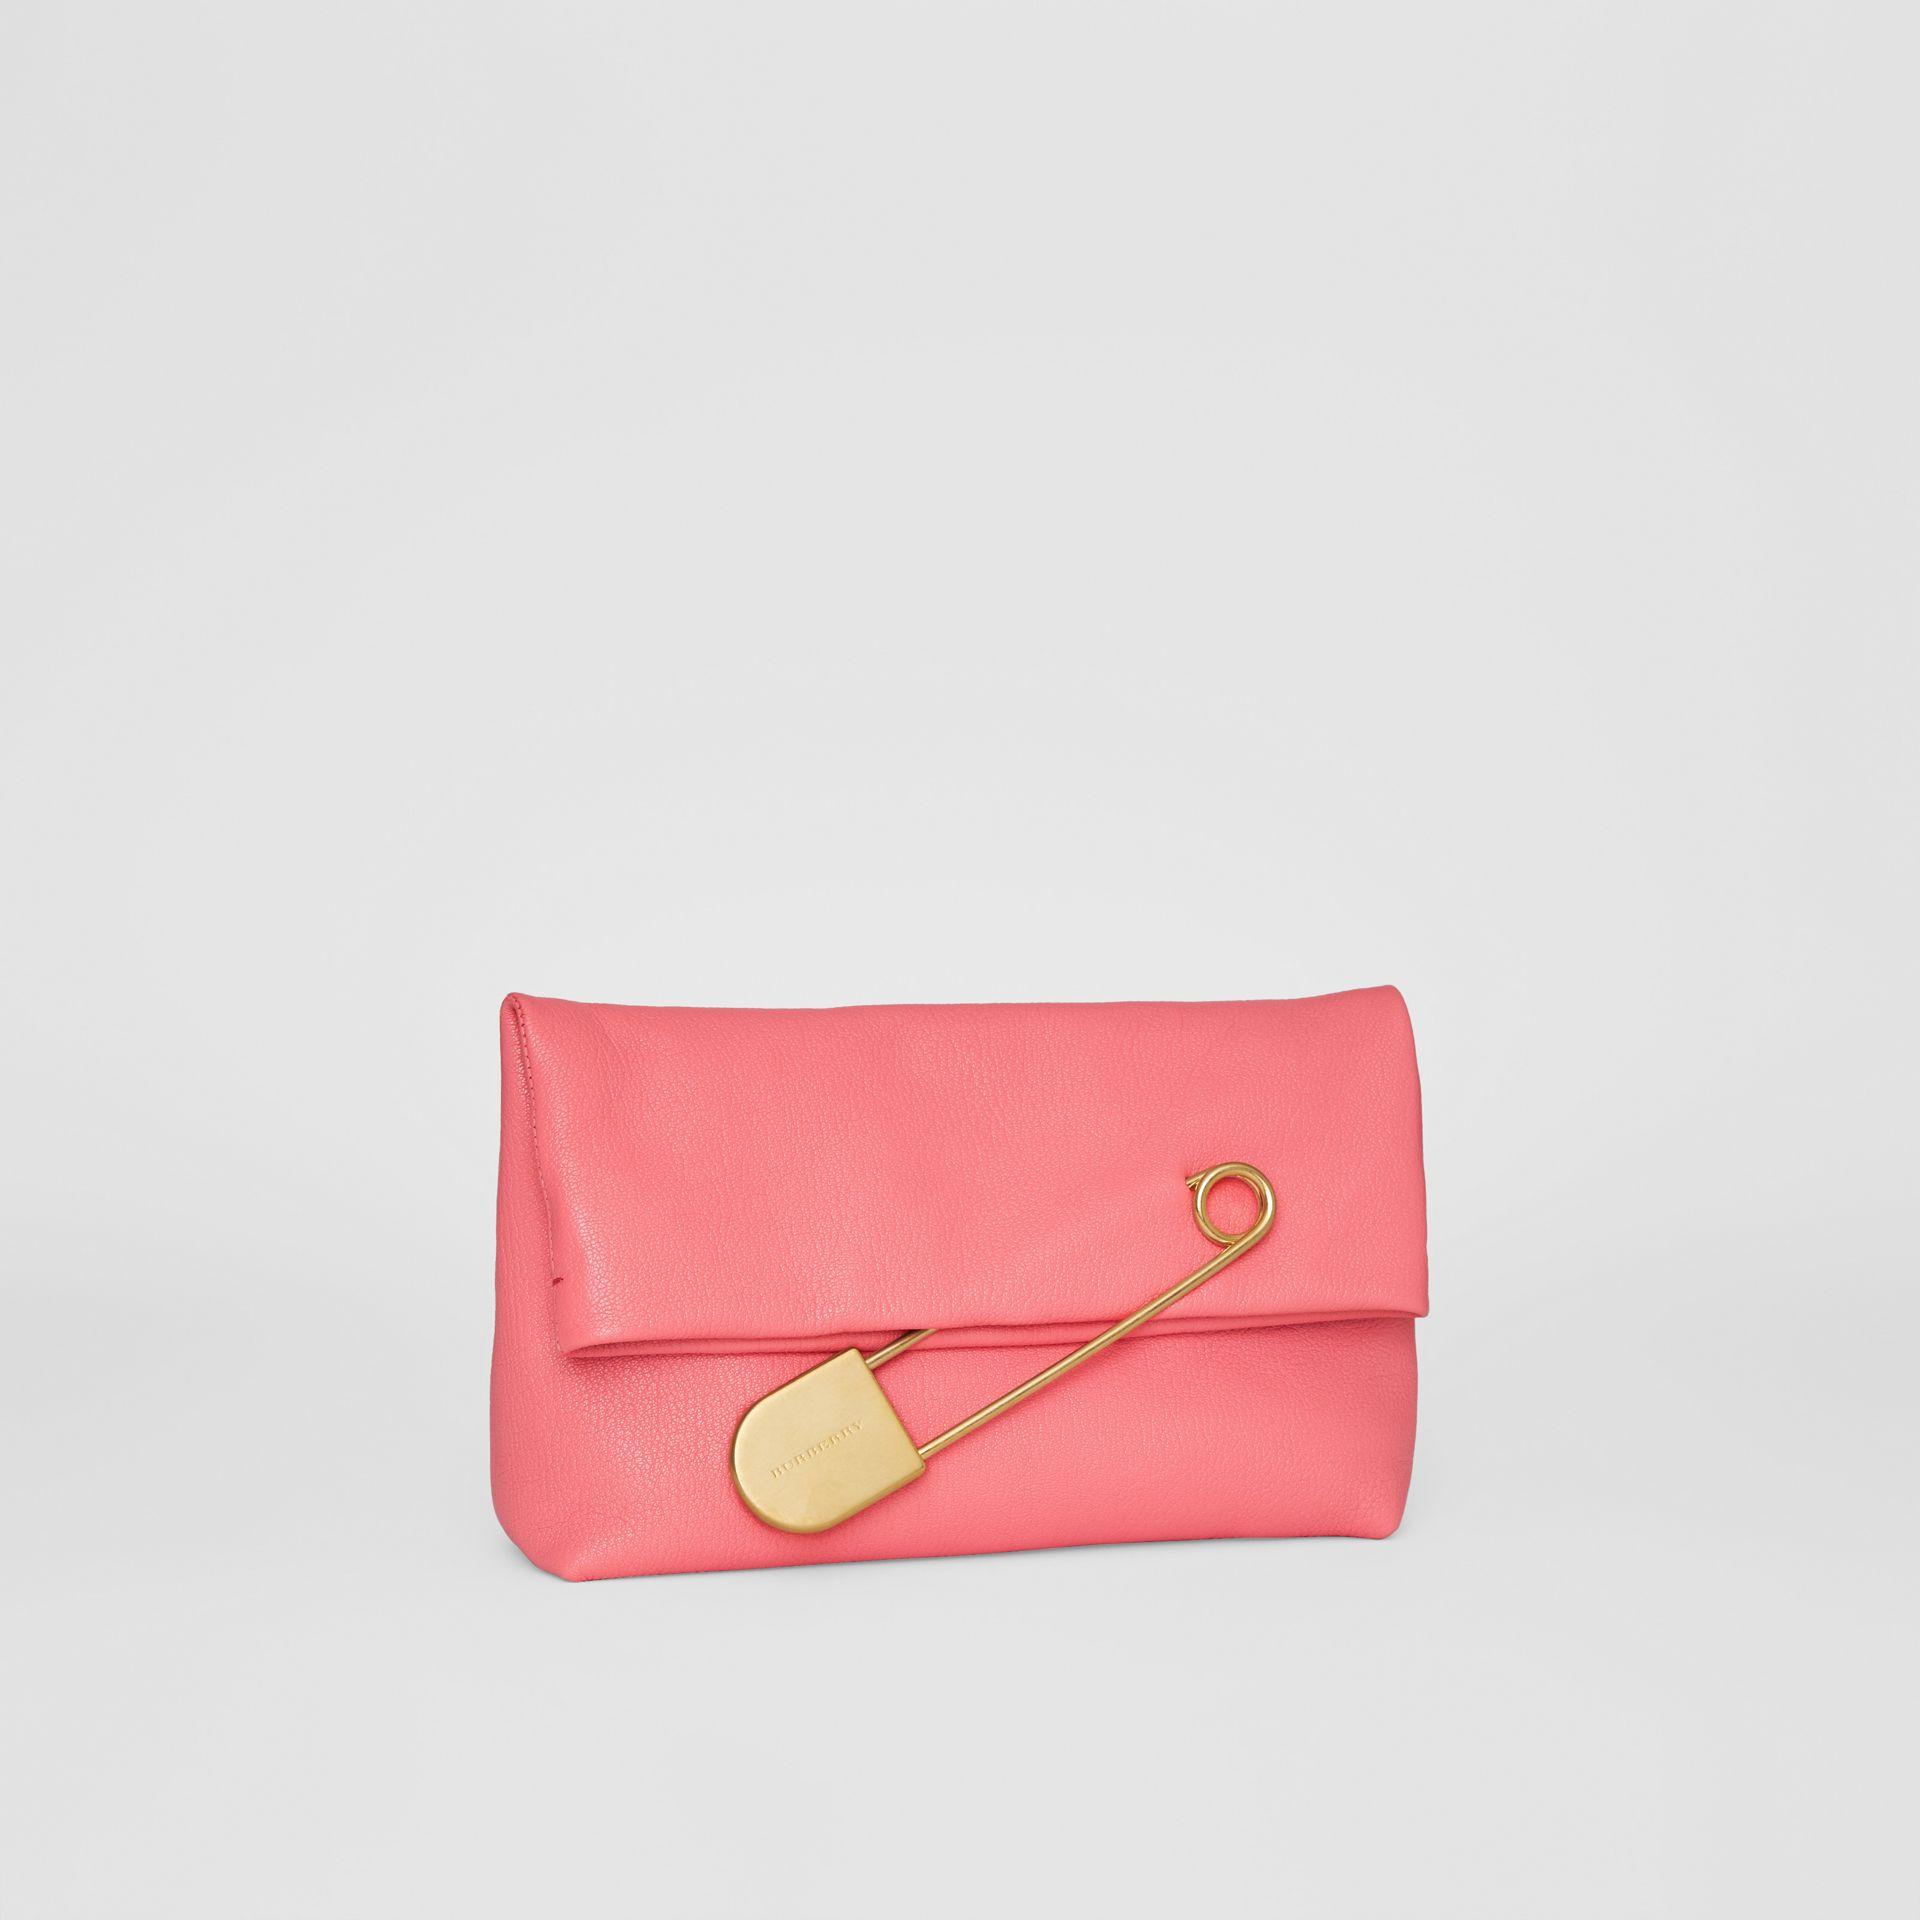 The Medium Pin Clutch in Leather in Bright Coral Pink - Women | Burberry United States - gallery image 6